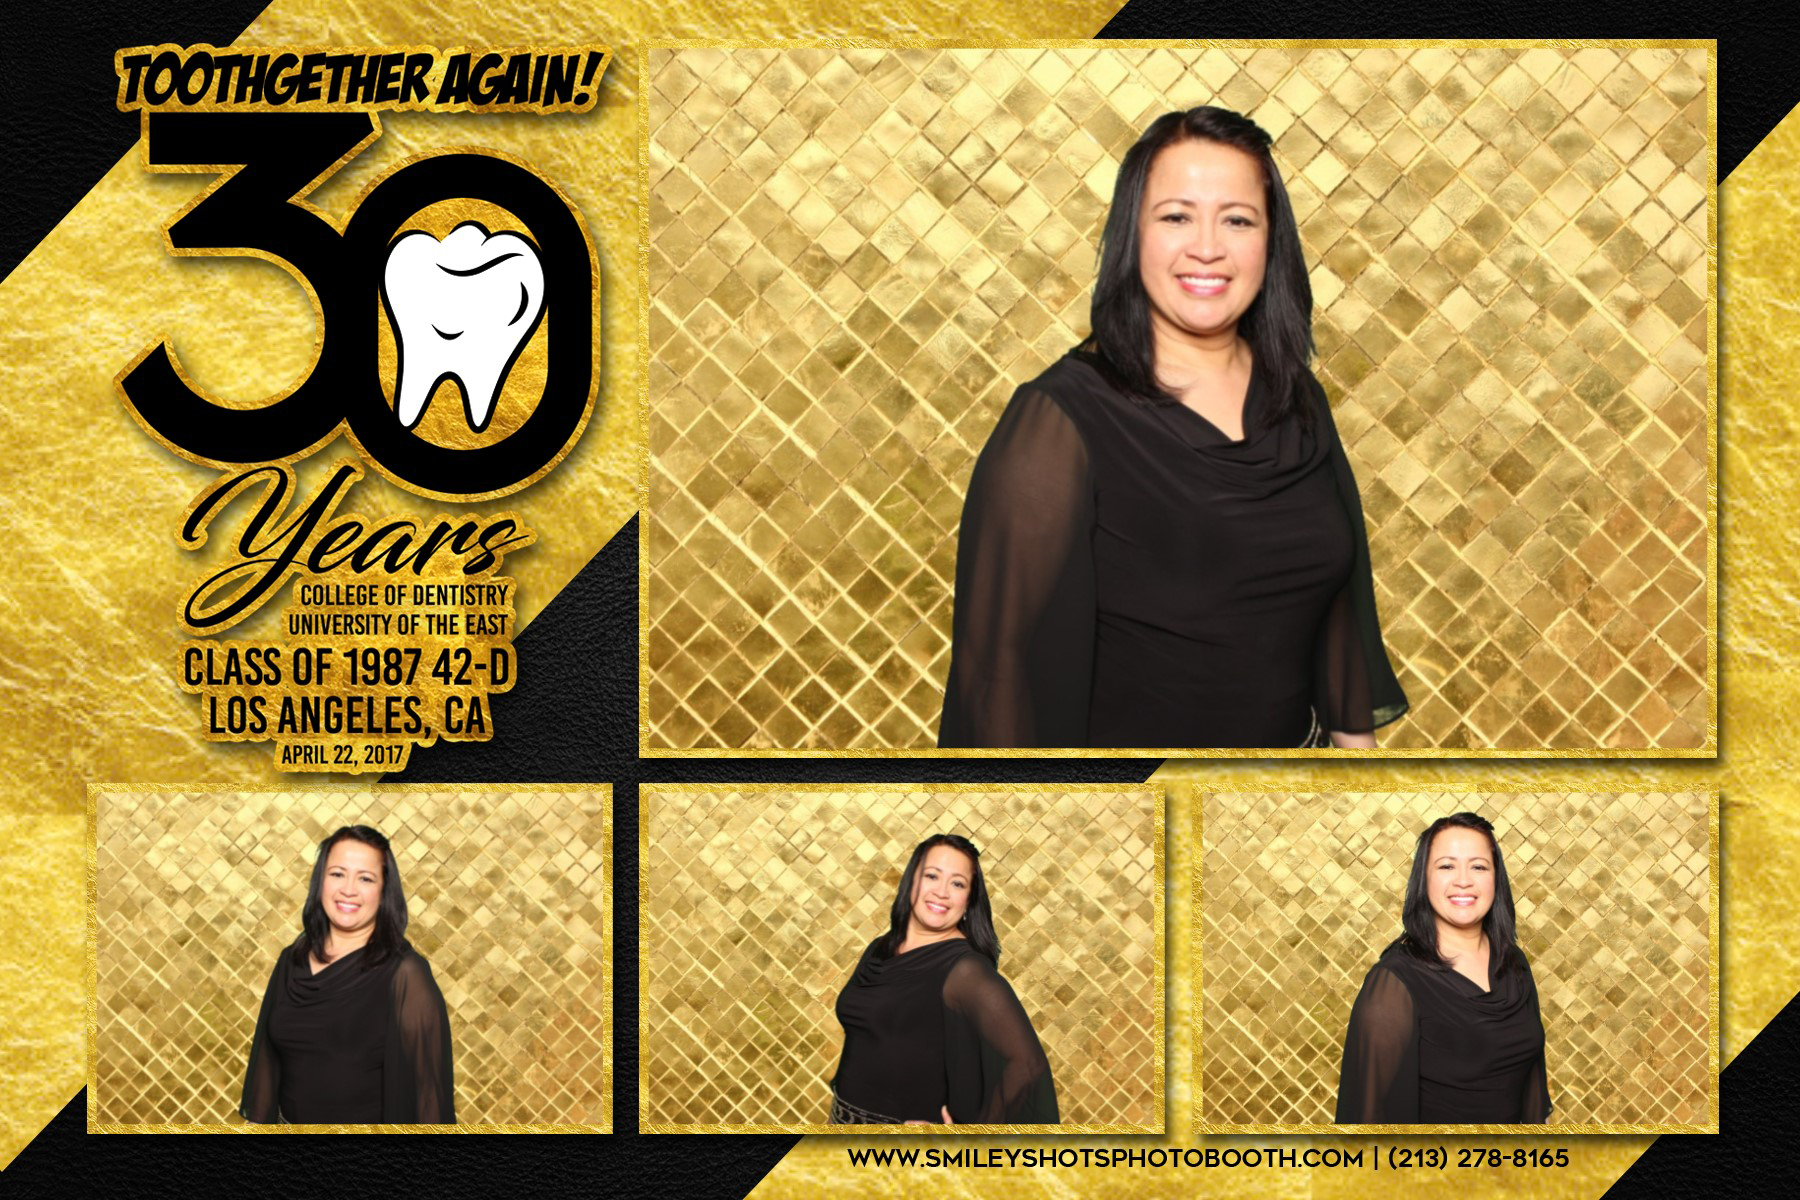 30th Years Dental UE Smiley Shots Photo Booth Photobooth (8).png